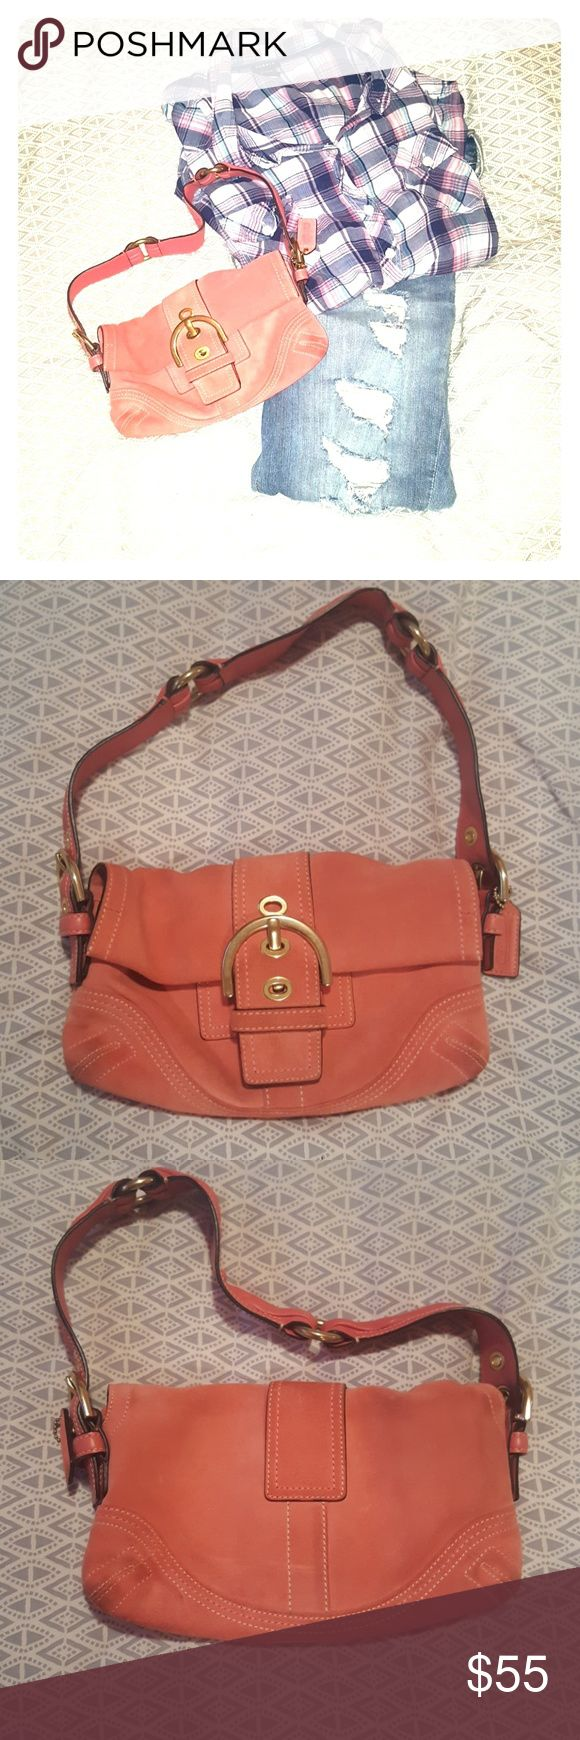 AUTHENTIC COACH PURSE Authentic Coach pink suede purse with gold hardware. Has multiple compartments inside with one zipper pocket. In pre loved condition. Ware seen throughout. Coach dust bag included. Color is a Salmon pink. Coach Bags